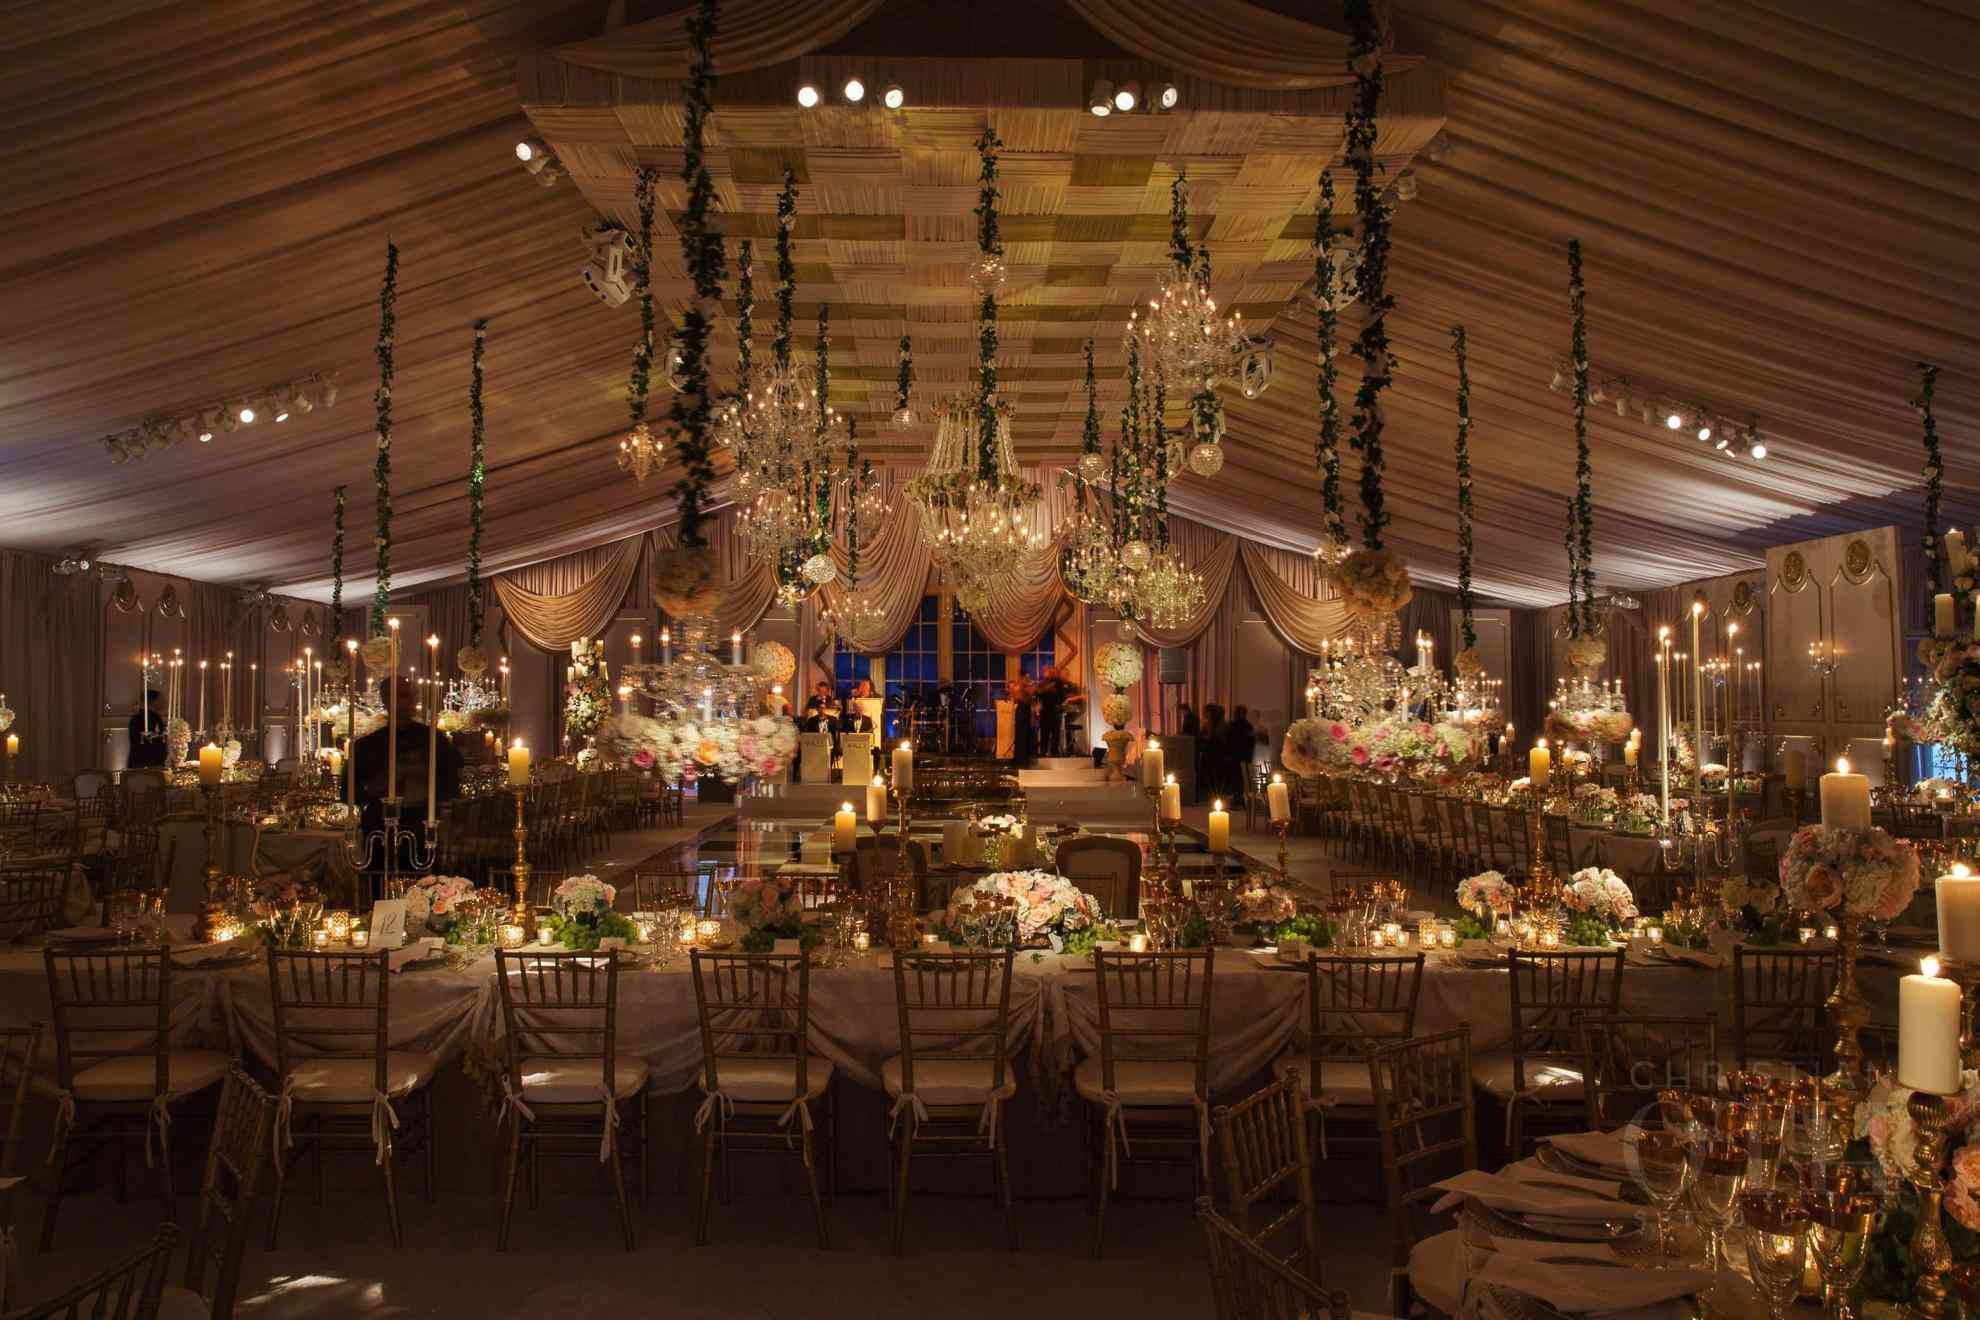 The interior of a spacious tented space.